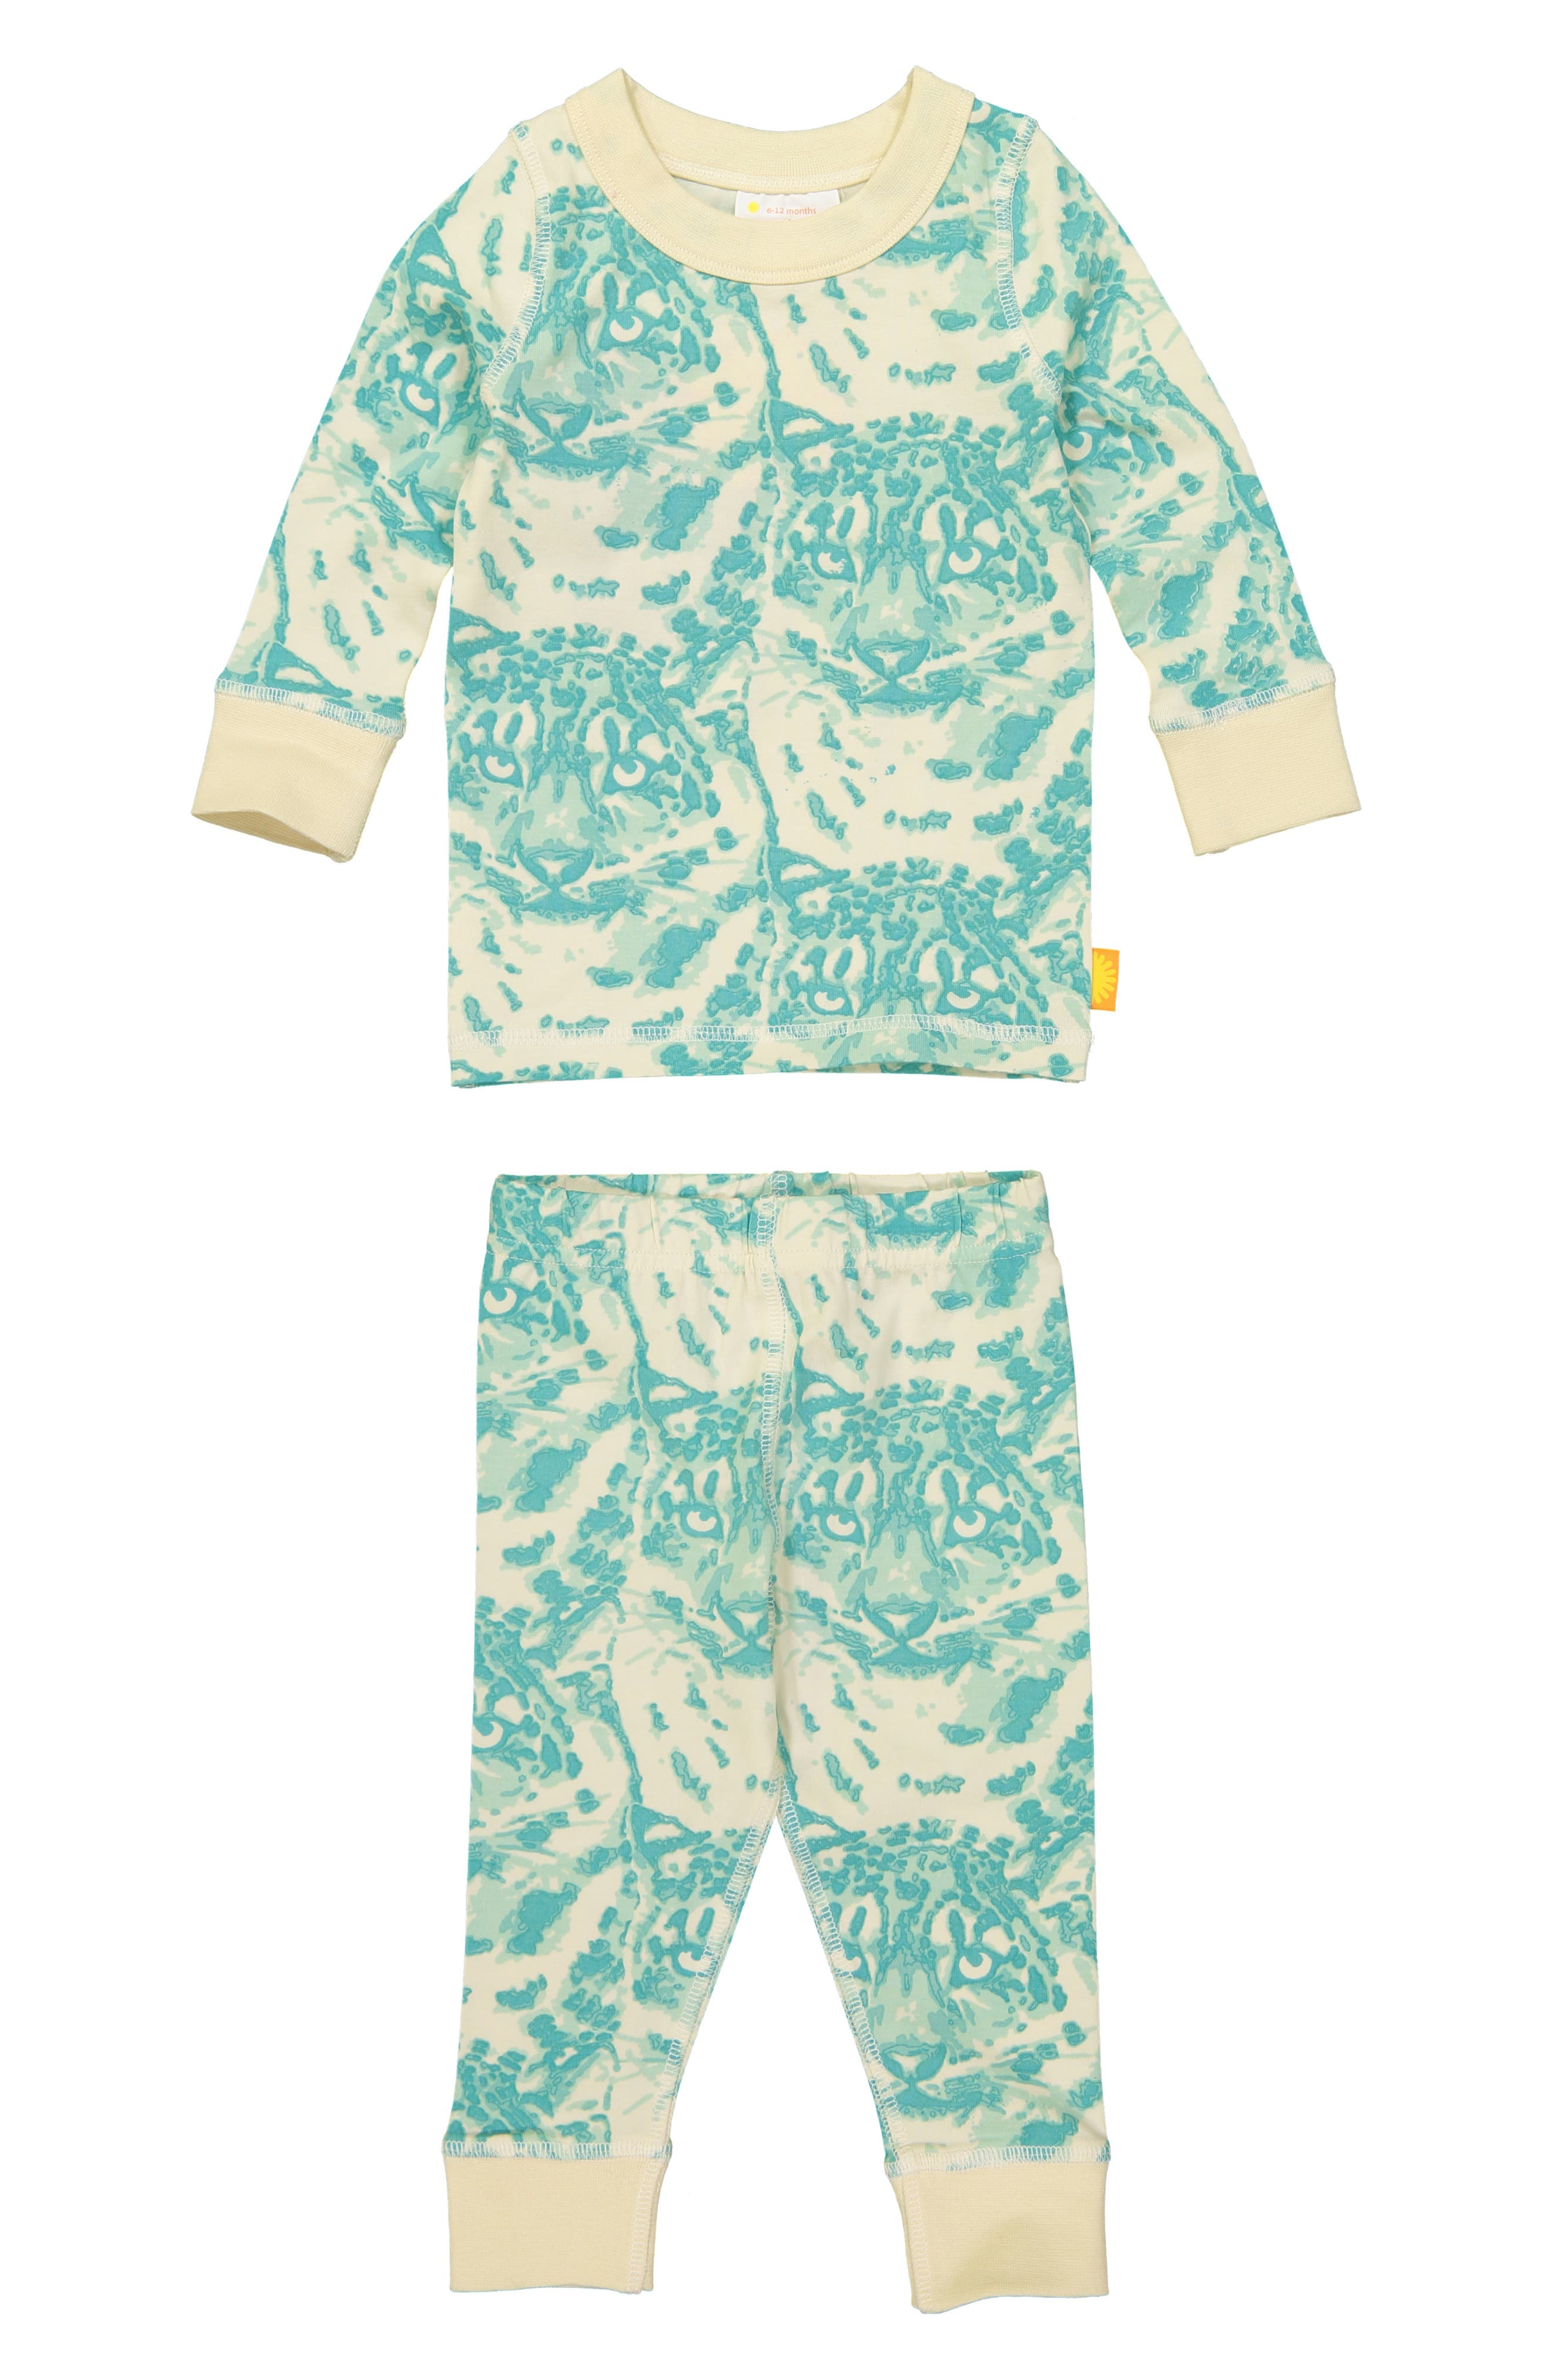 Toddler Boys Masala Baby Cat Camo Organic Cotton Fitted TwoPiece Pajamas Size 3Y  Bluegreen